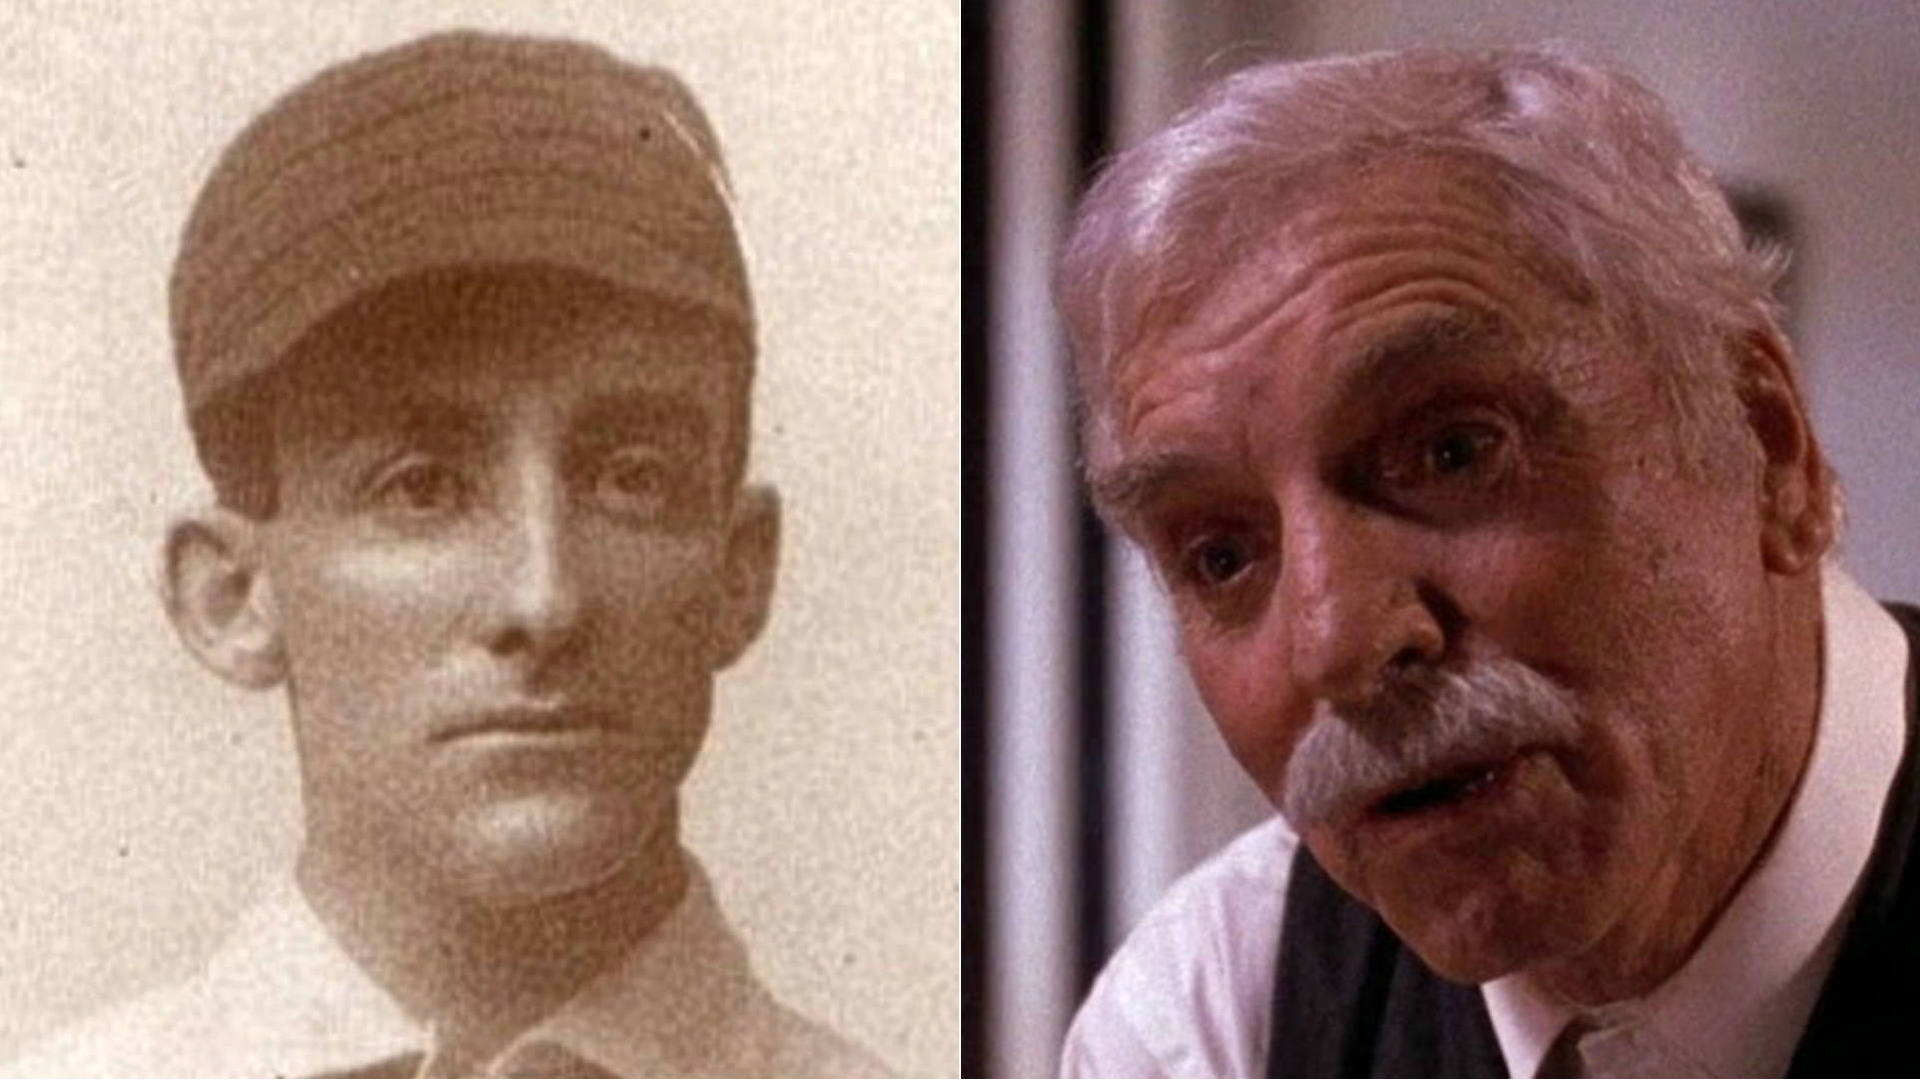 'Moonlight' Graham played in his only MLB game 110 years ago today